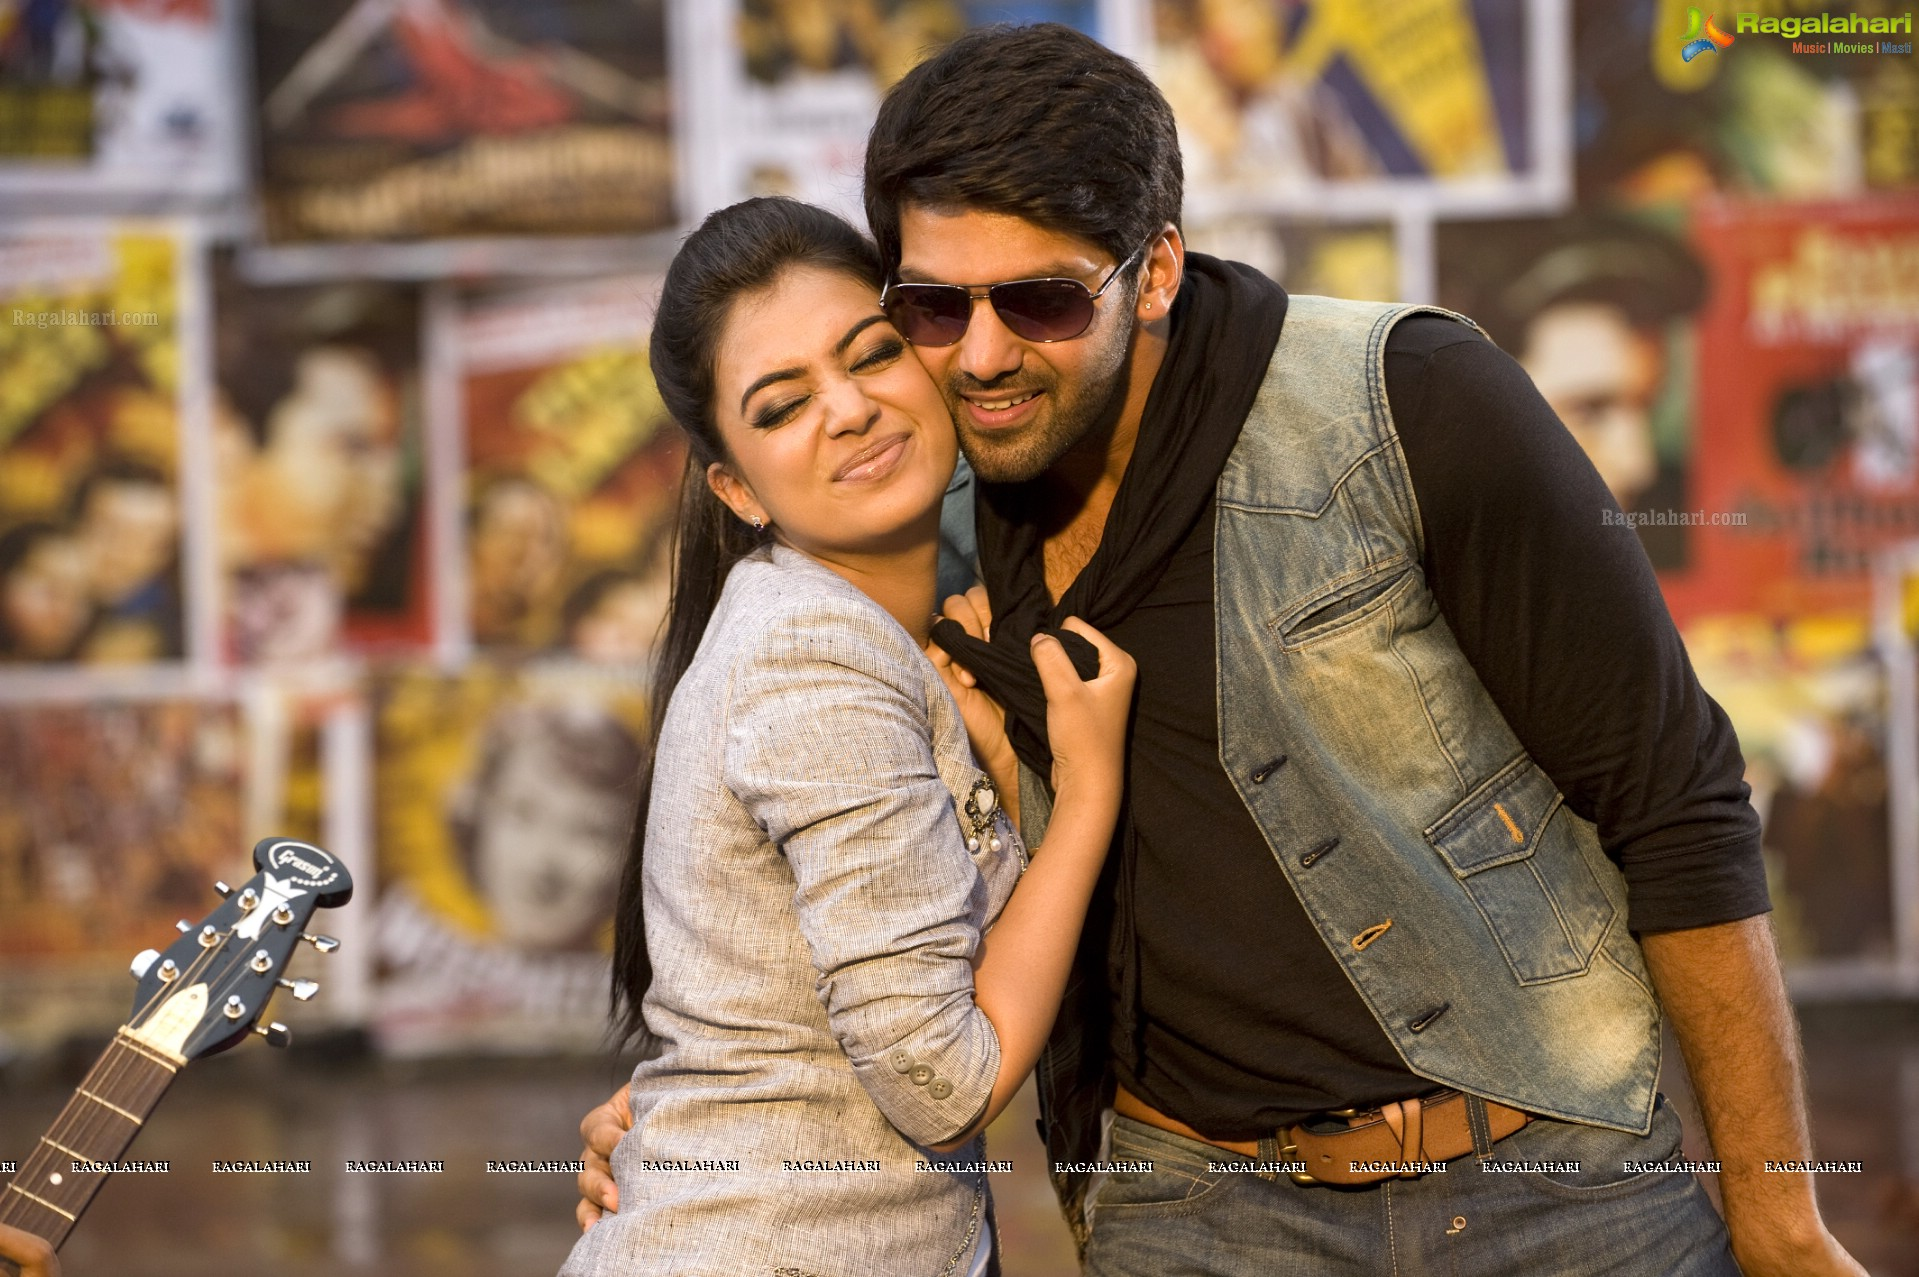 'Raja Rani' grand release on March 14, 2014